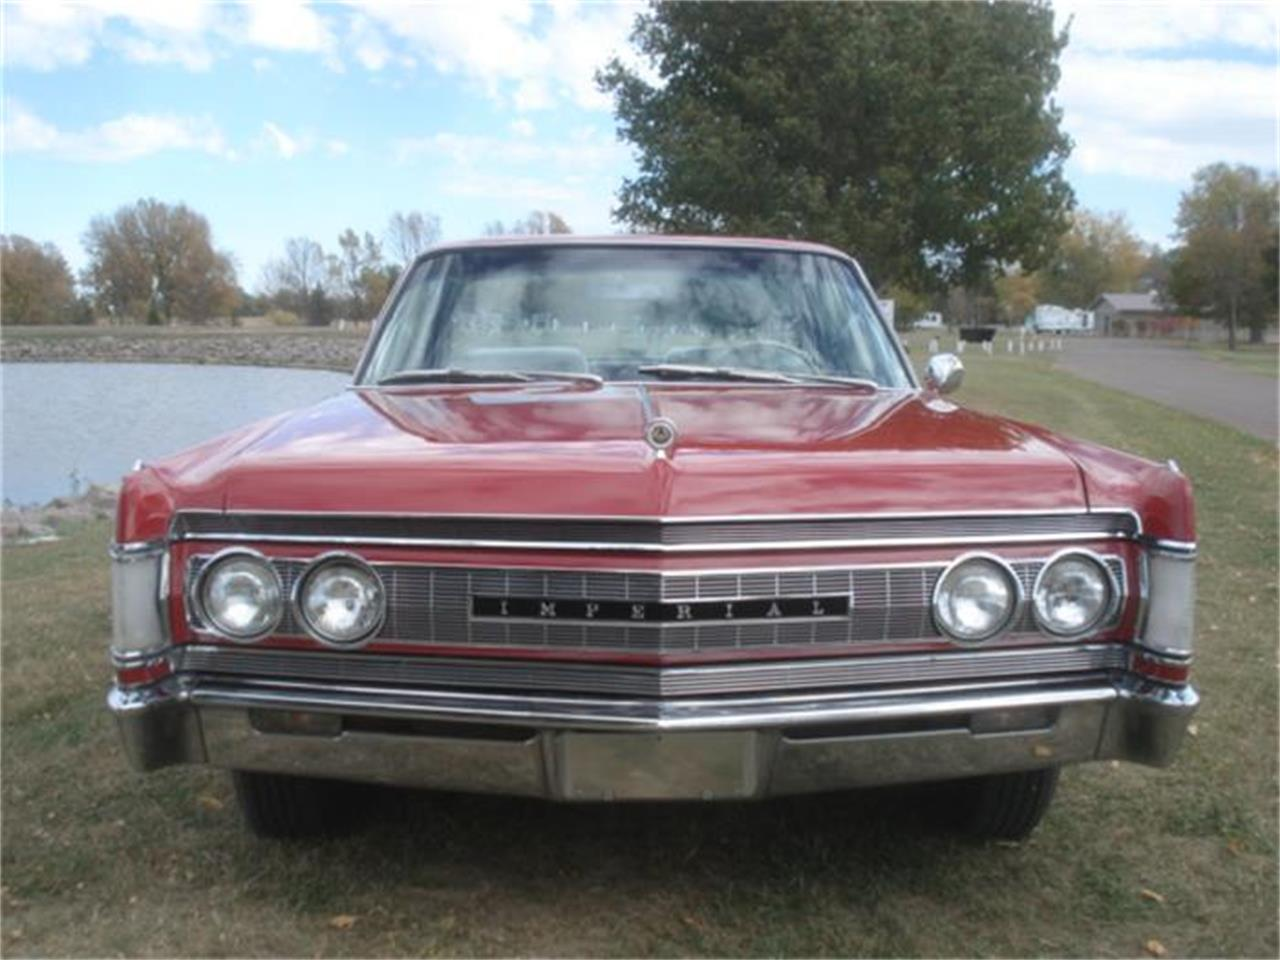 Large Picture of '67 Chrysler Imperial - $16,550.00 - FNNW